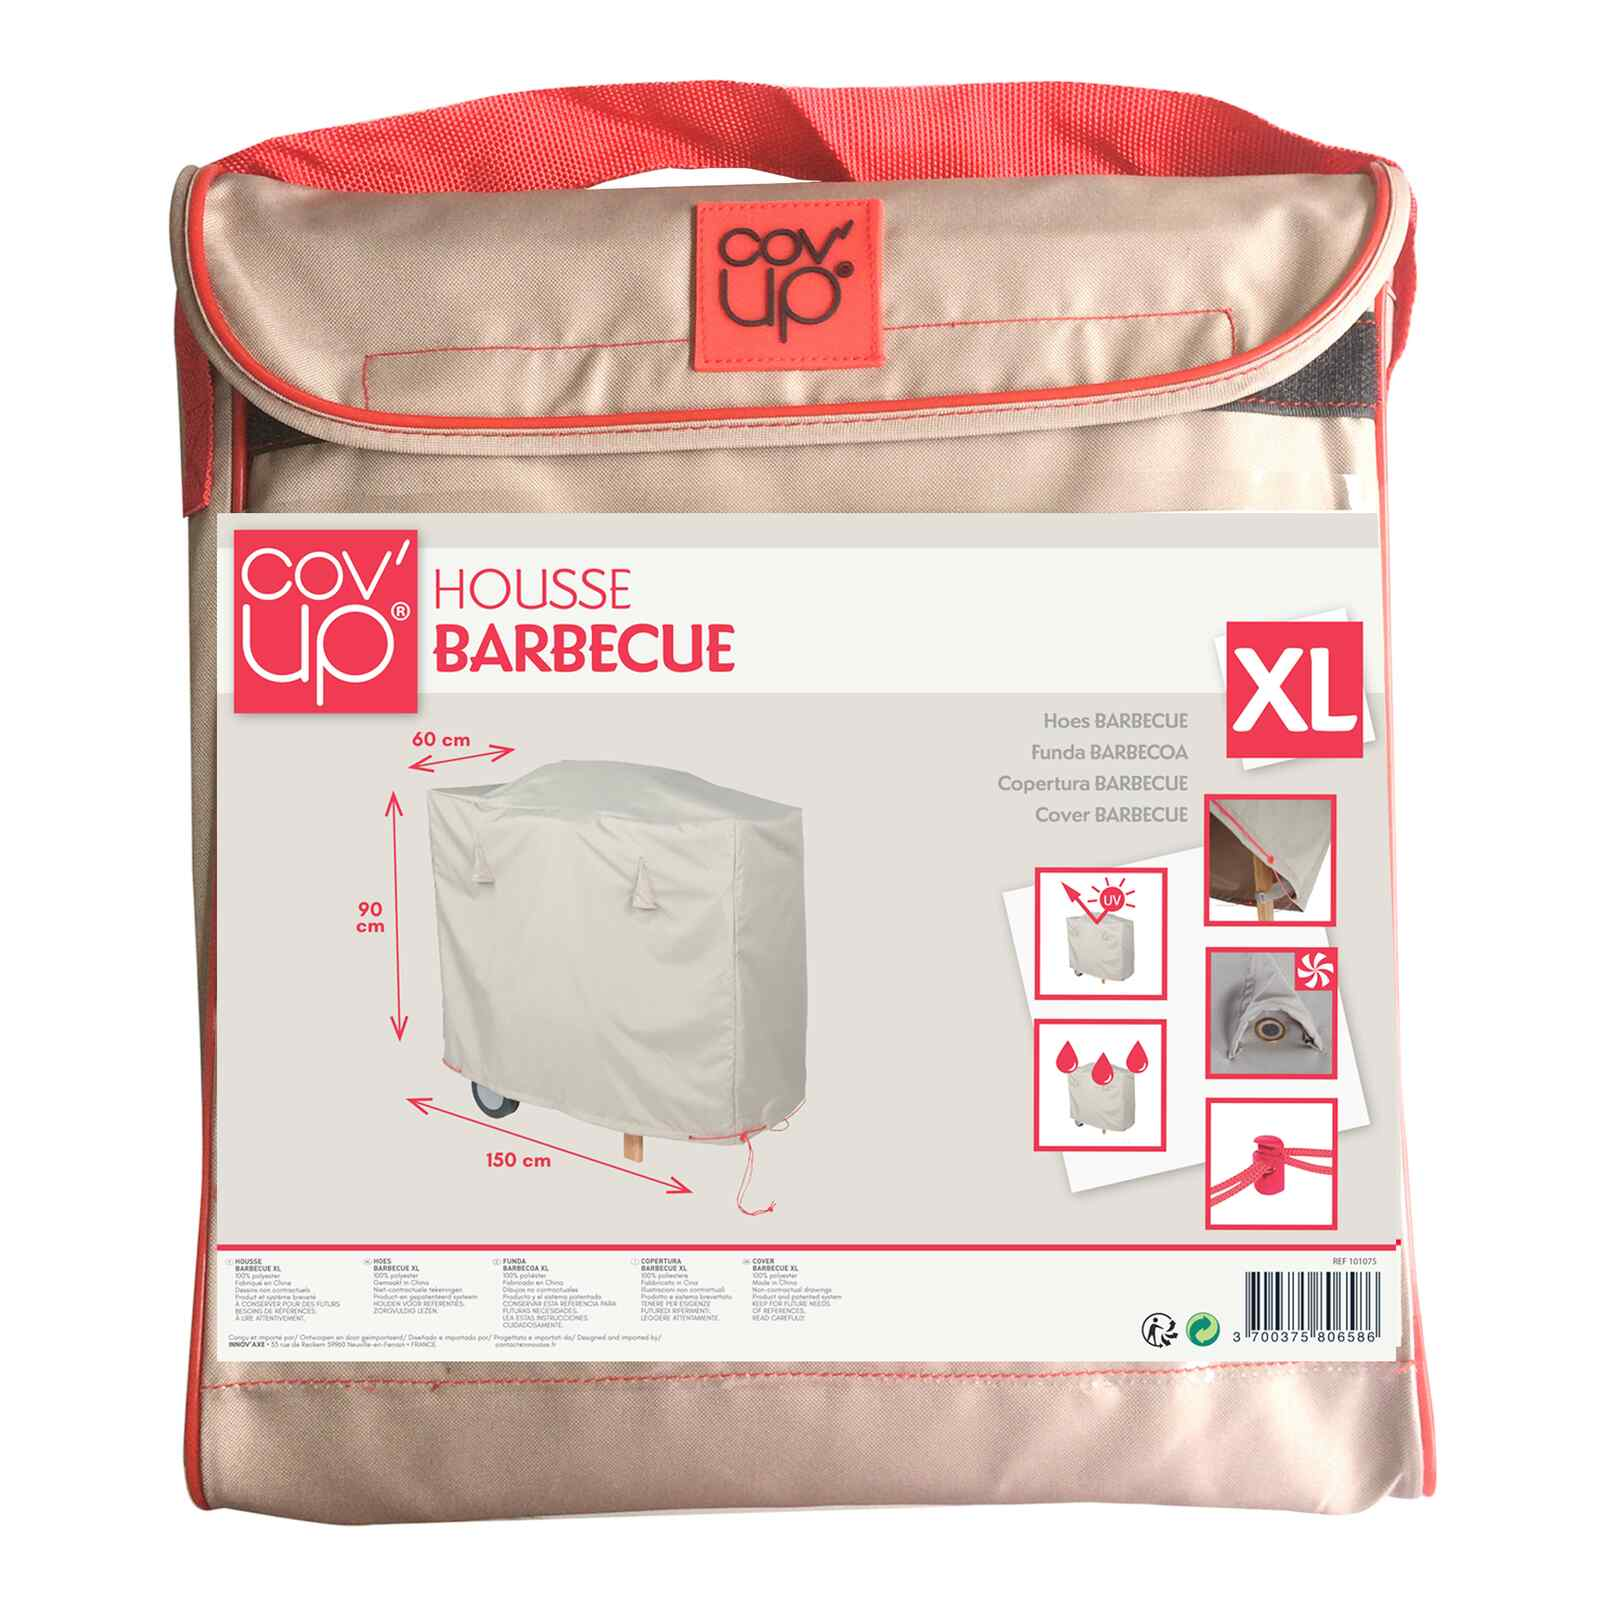 Housse de protection barbecue en polyester taupe